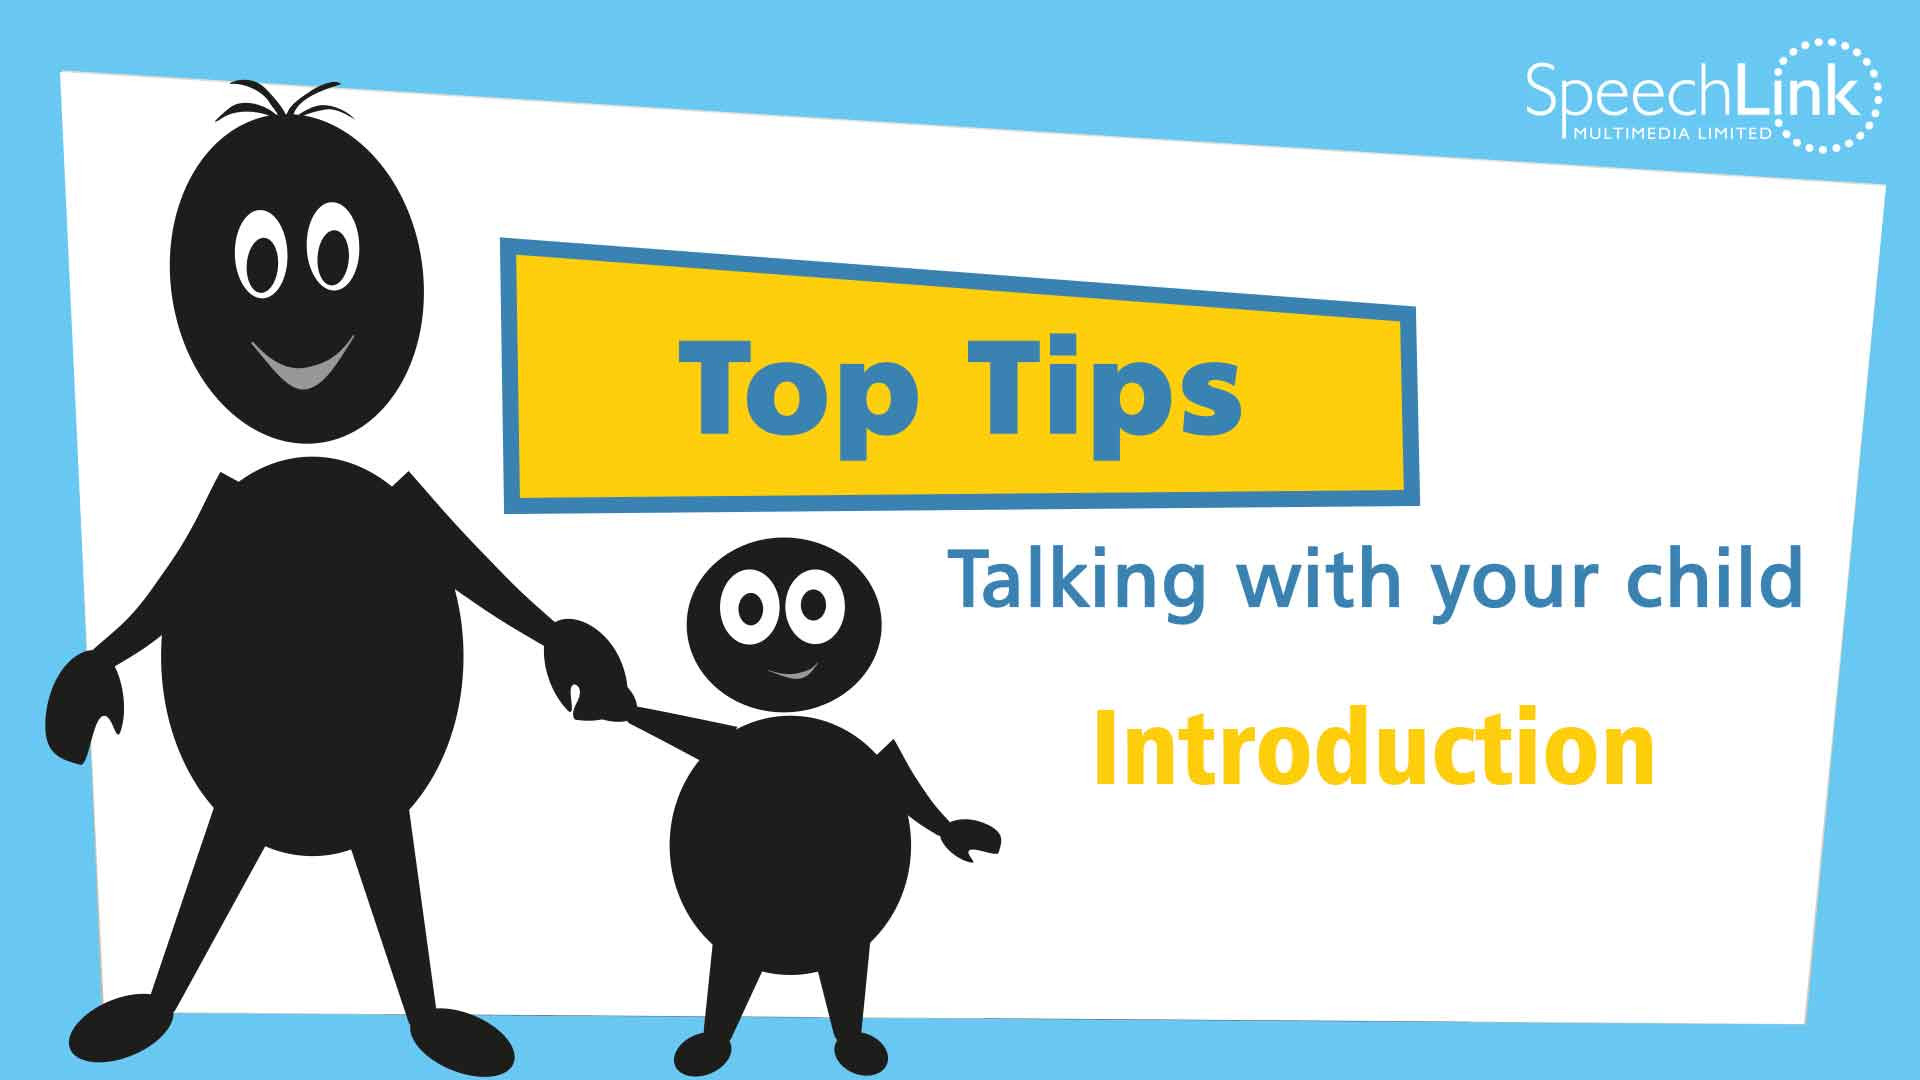 Top tips for Talking with your child video